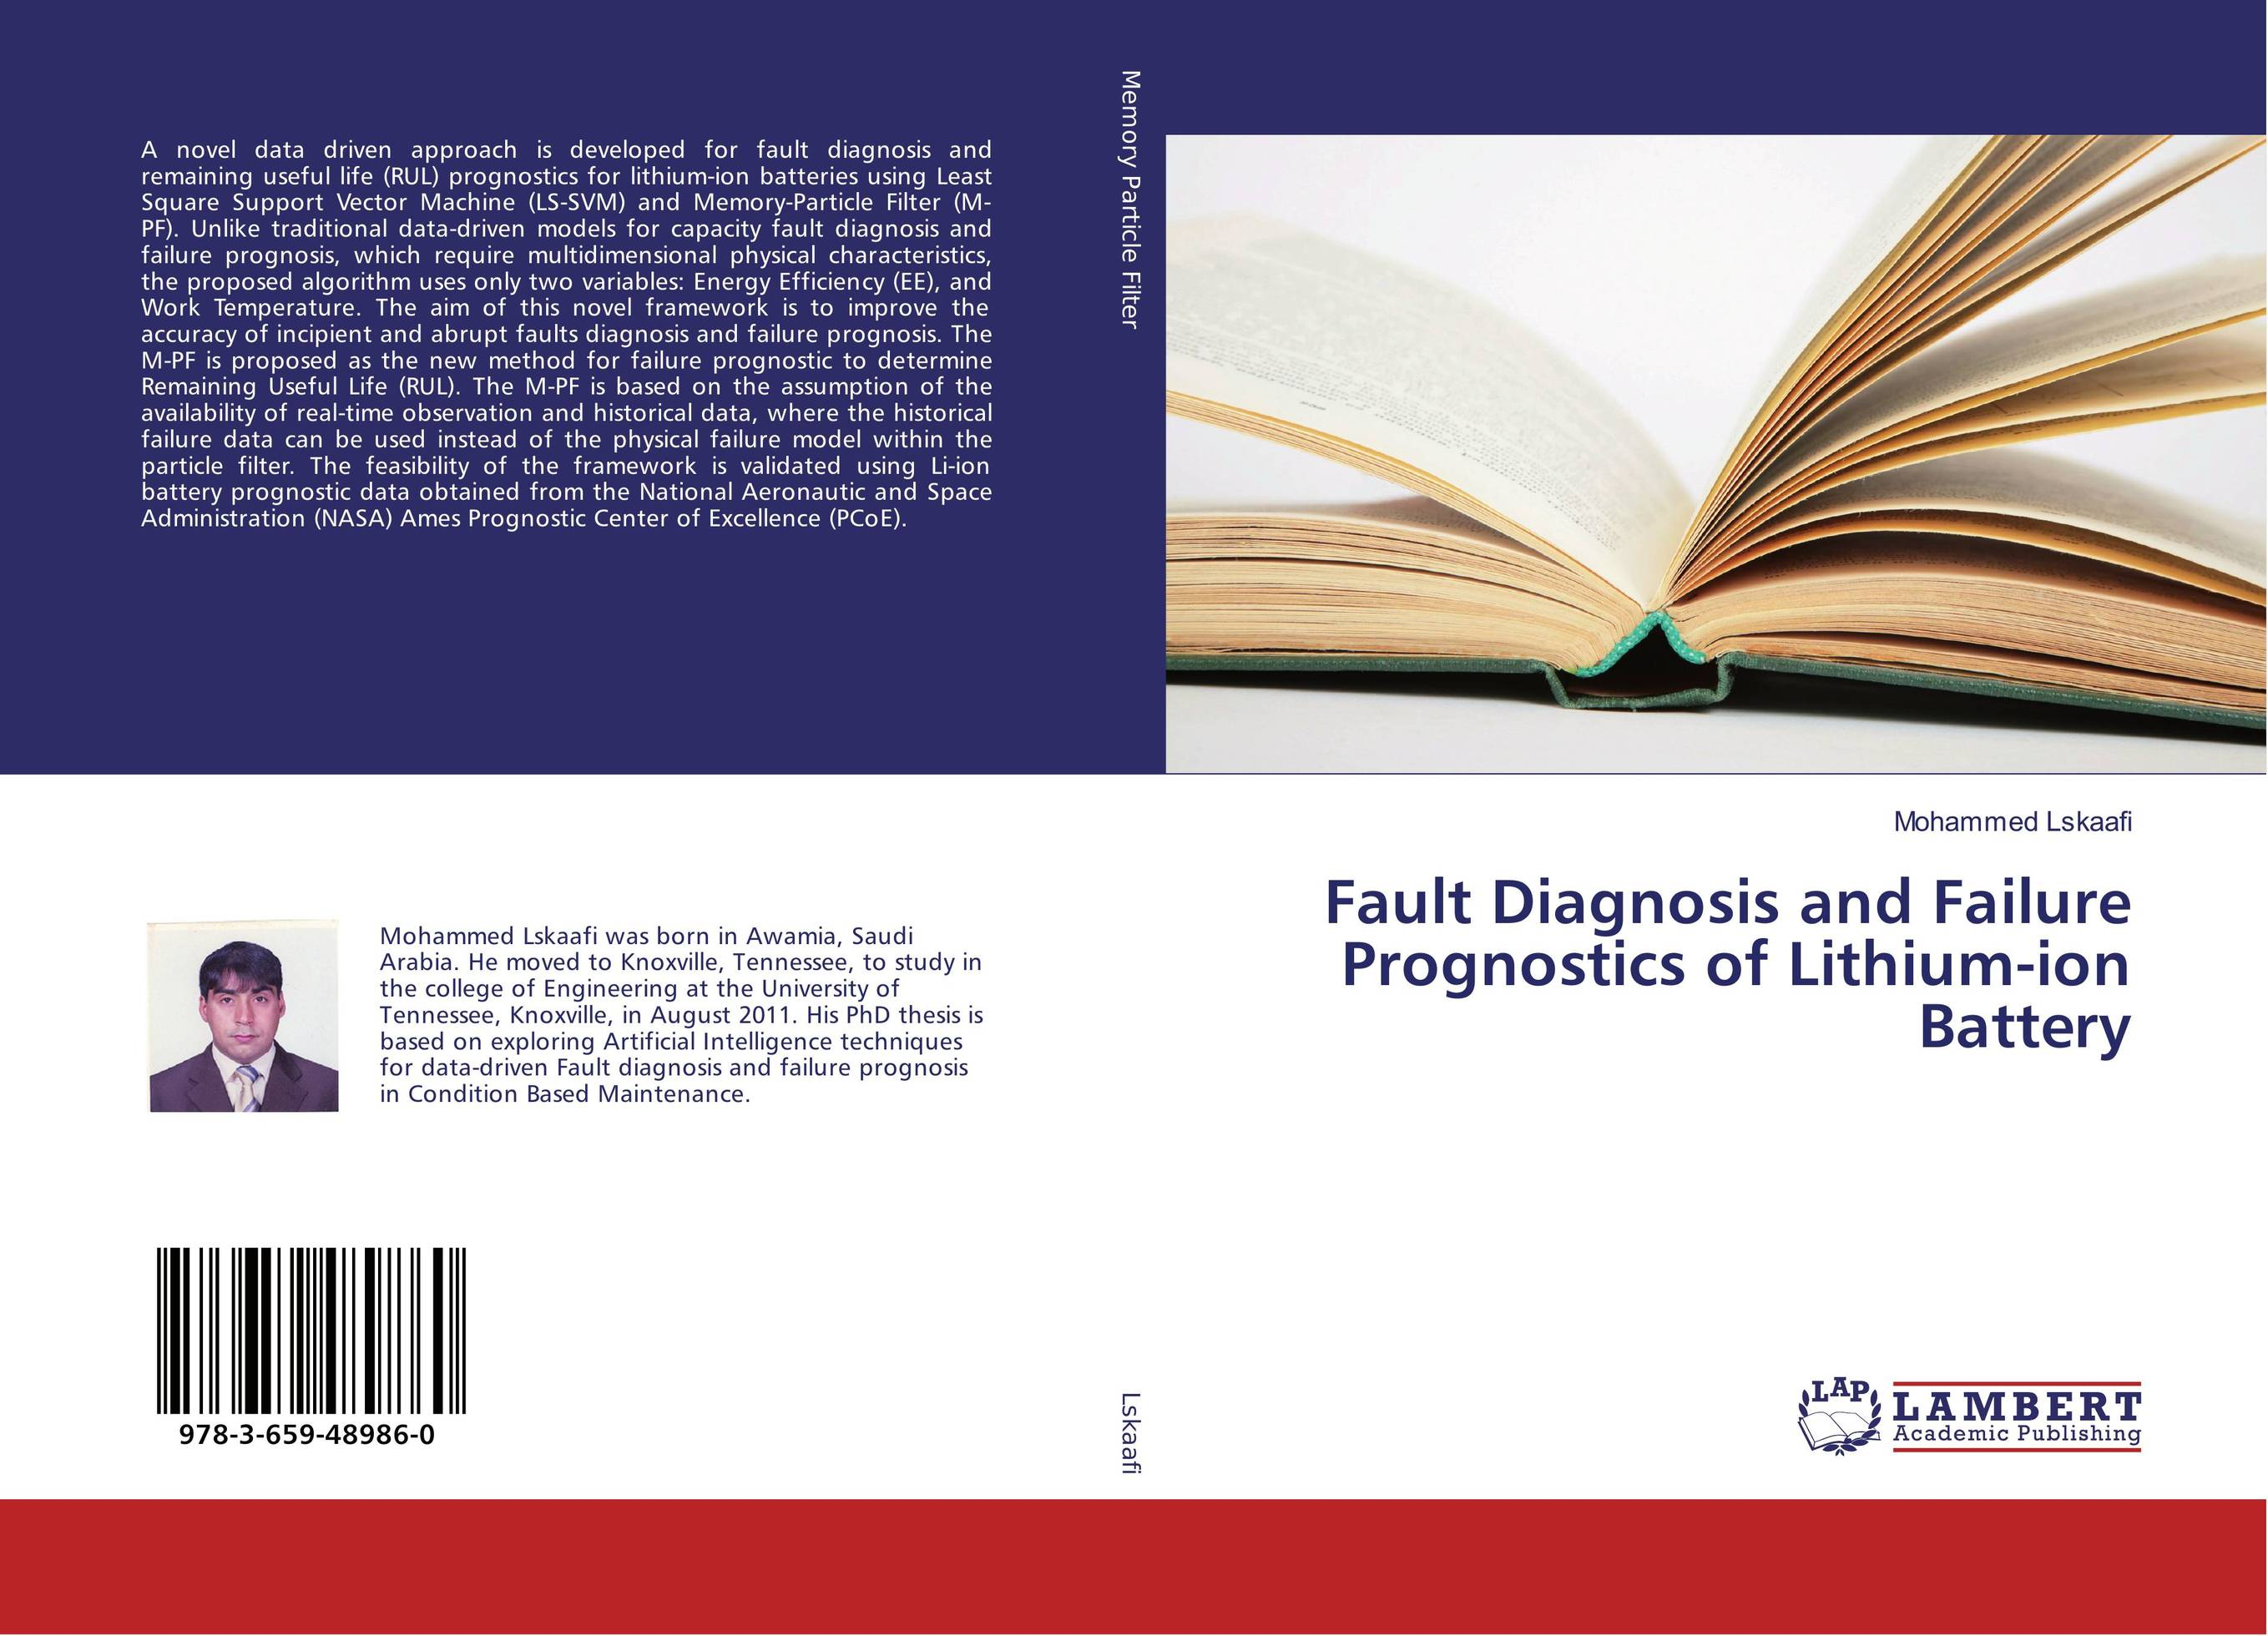 Fault Diagnosis and Failure Prognostics of Lithium-ion Battery driven to distraction